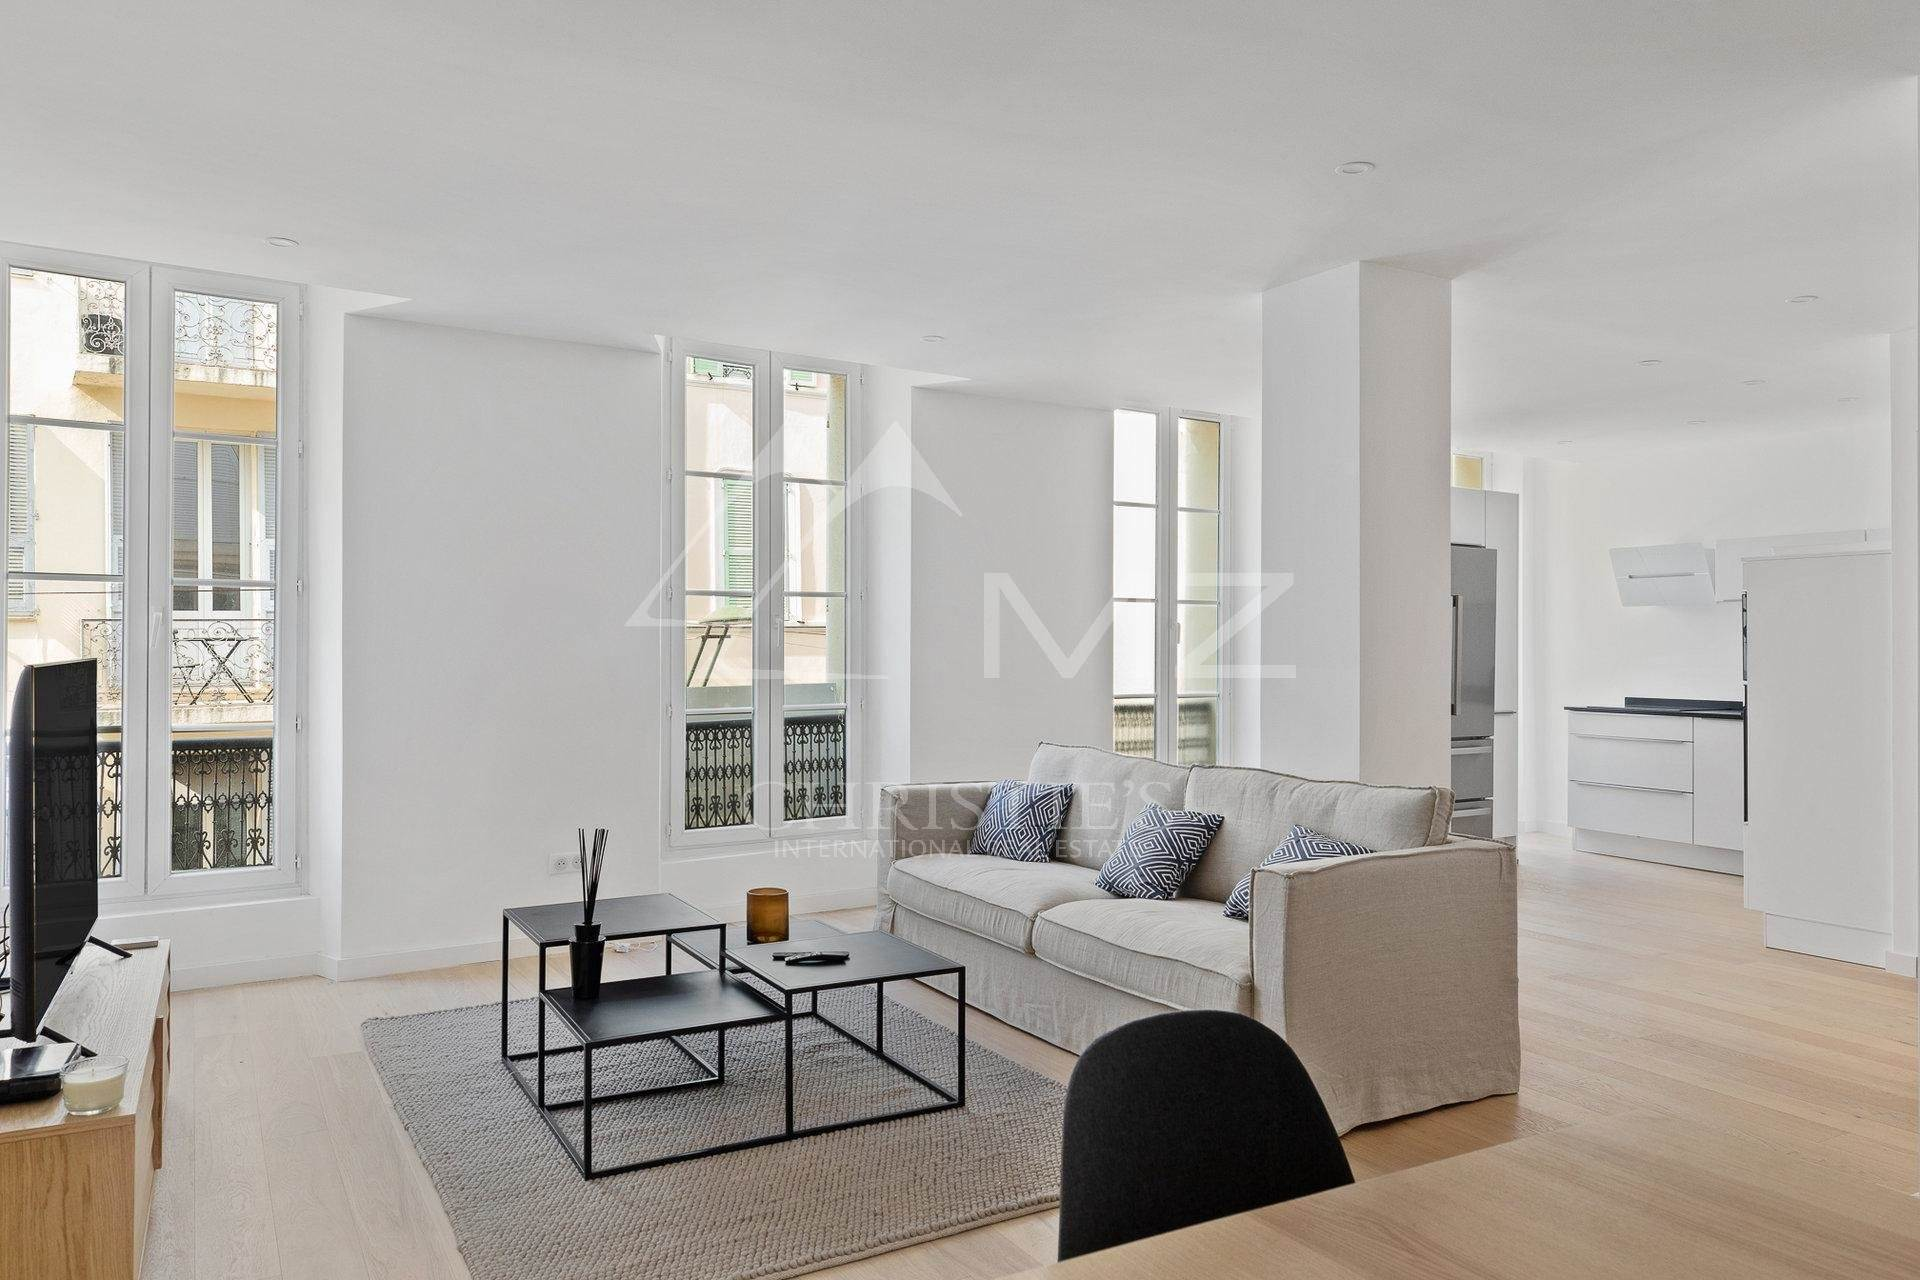 2. 公寓 為 出售 在 Cannes Center - Beautiful completely renovated apartment Cannes, 海濱阿爾卑斯省,06400 法國